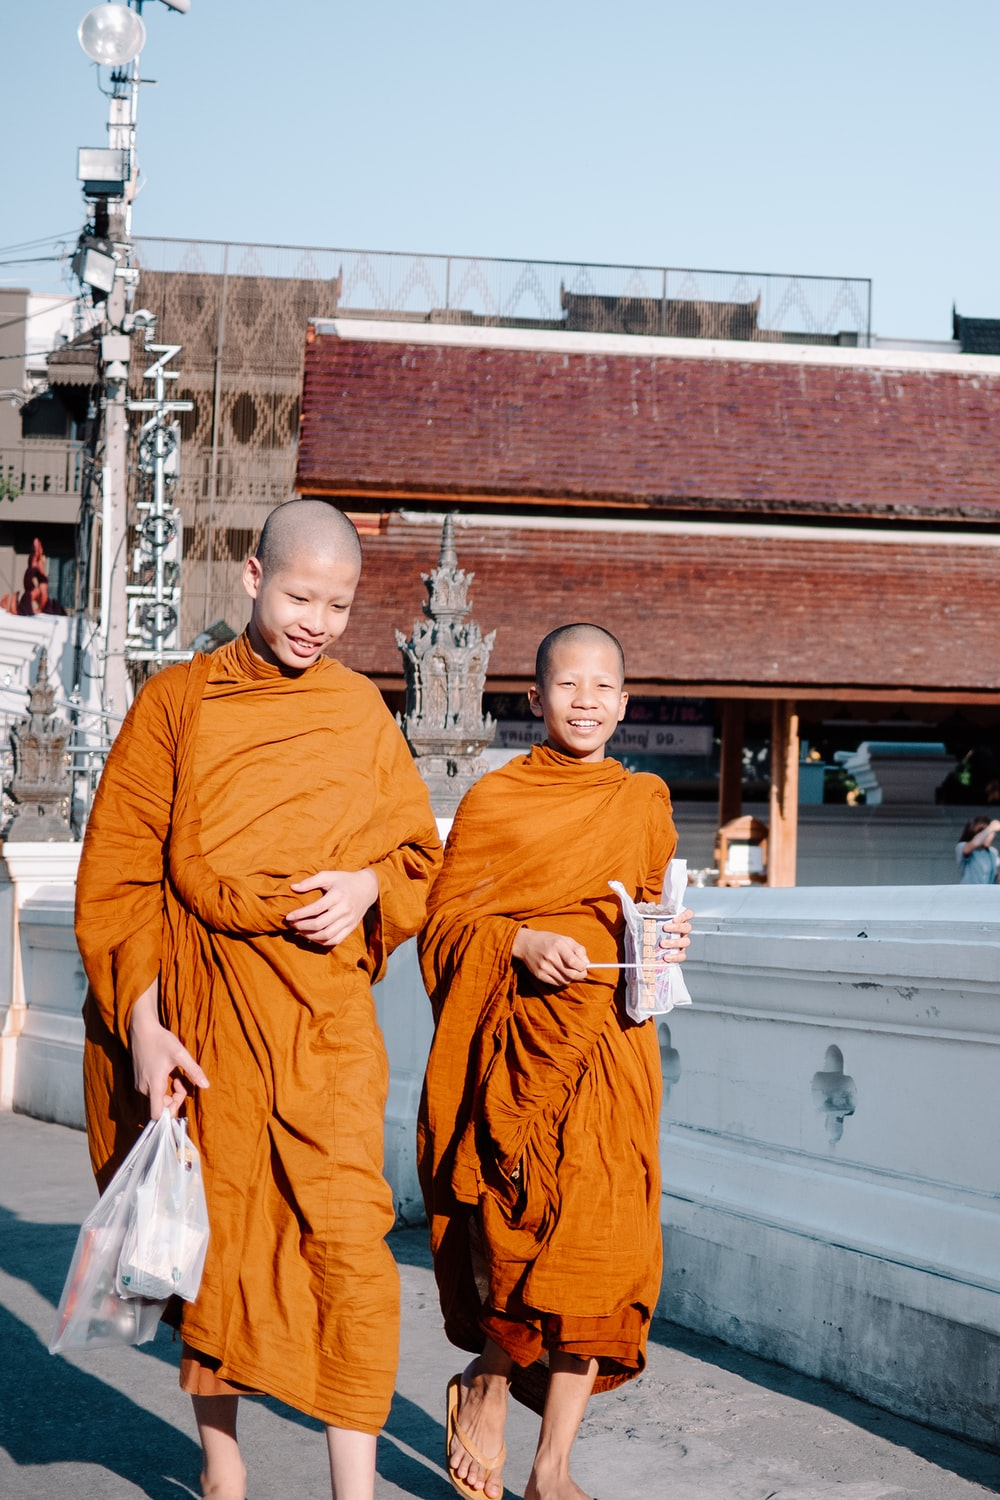 two boys monk carrying white plastic bags